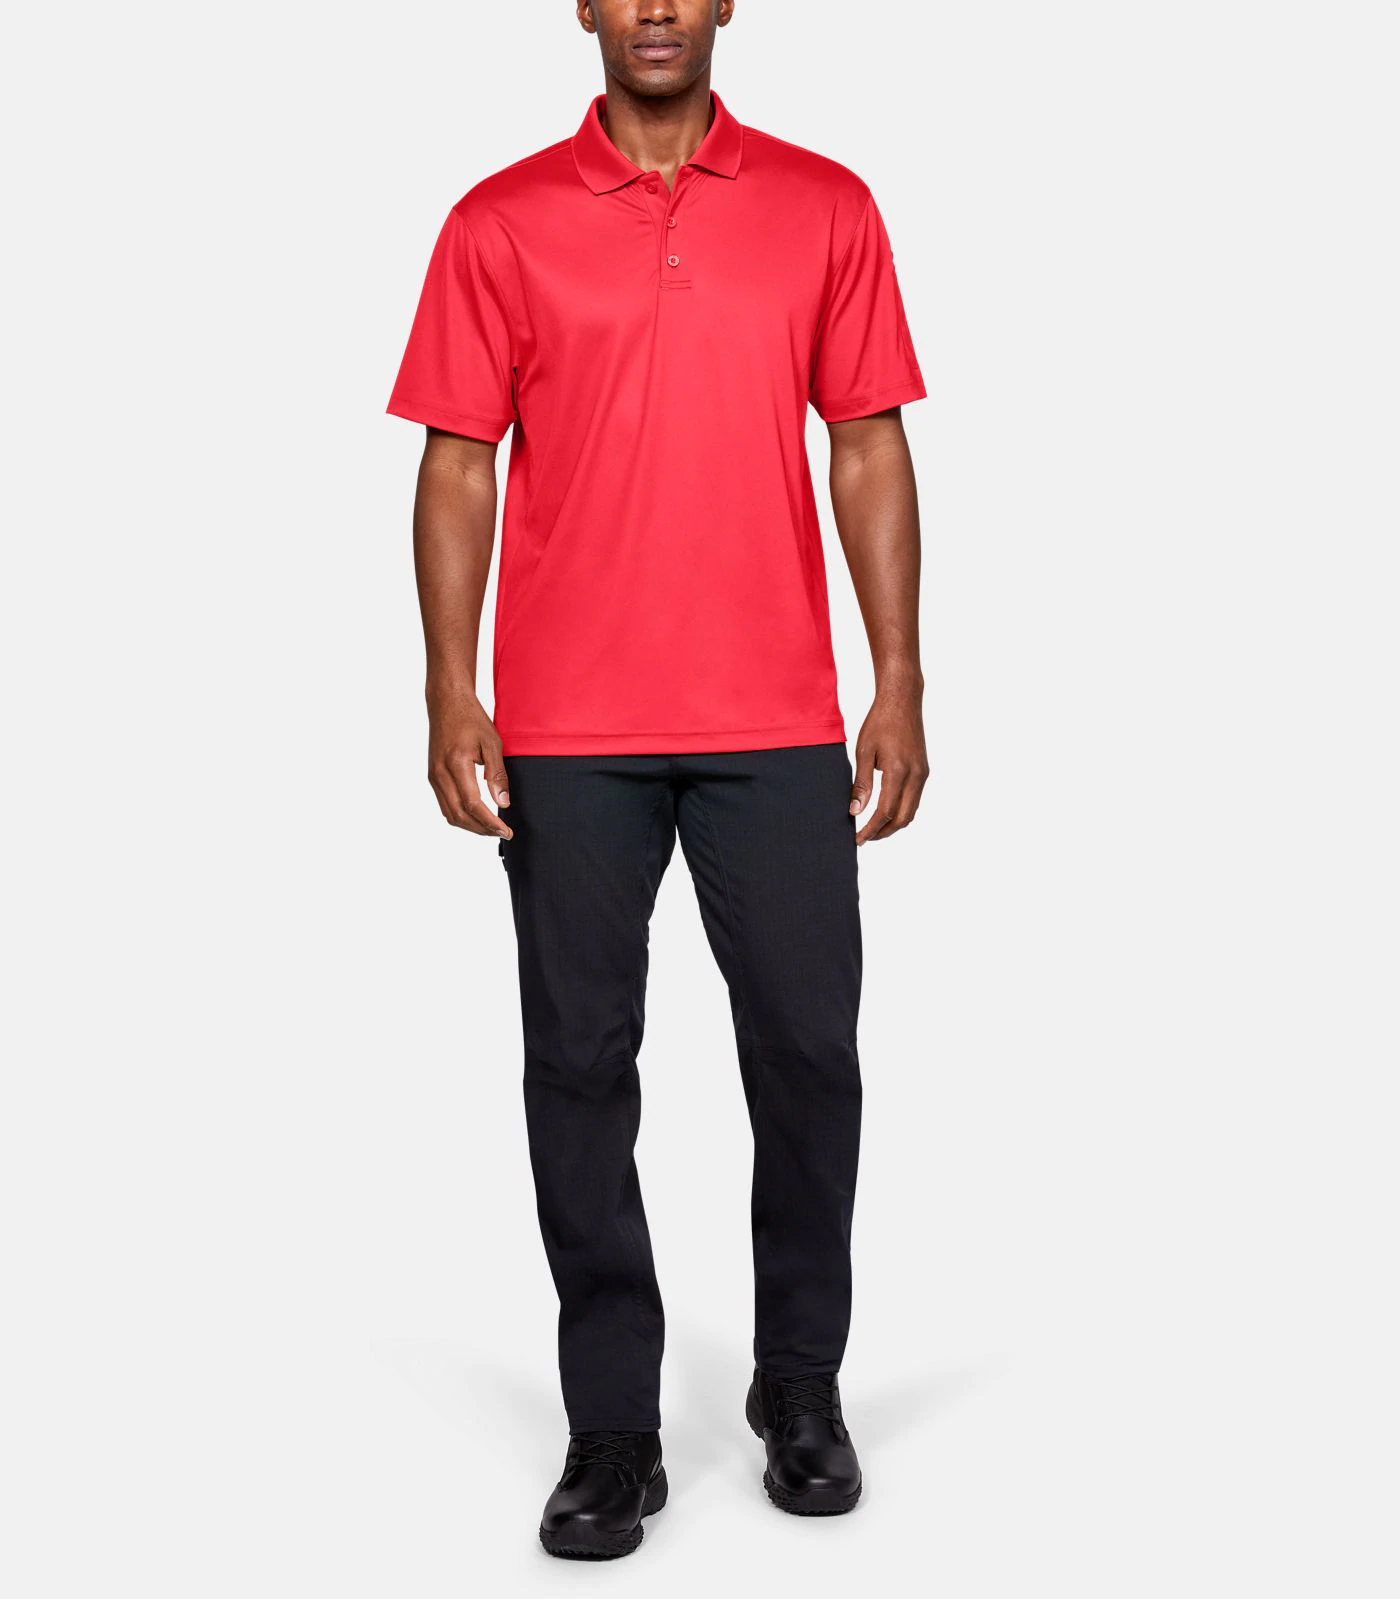 MENS_POLO_TacPerformance-SS_UAR1279759600_03